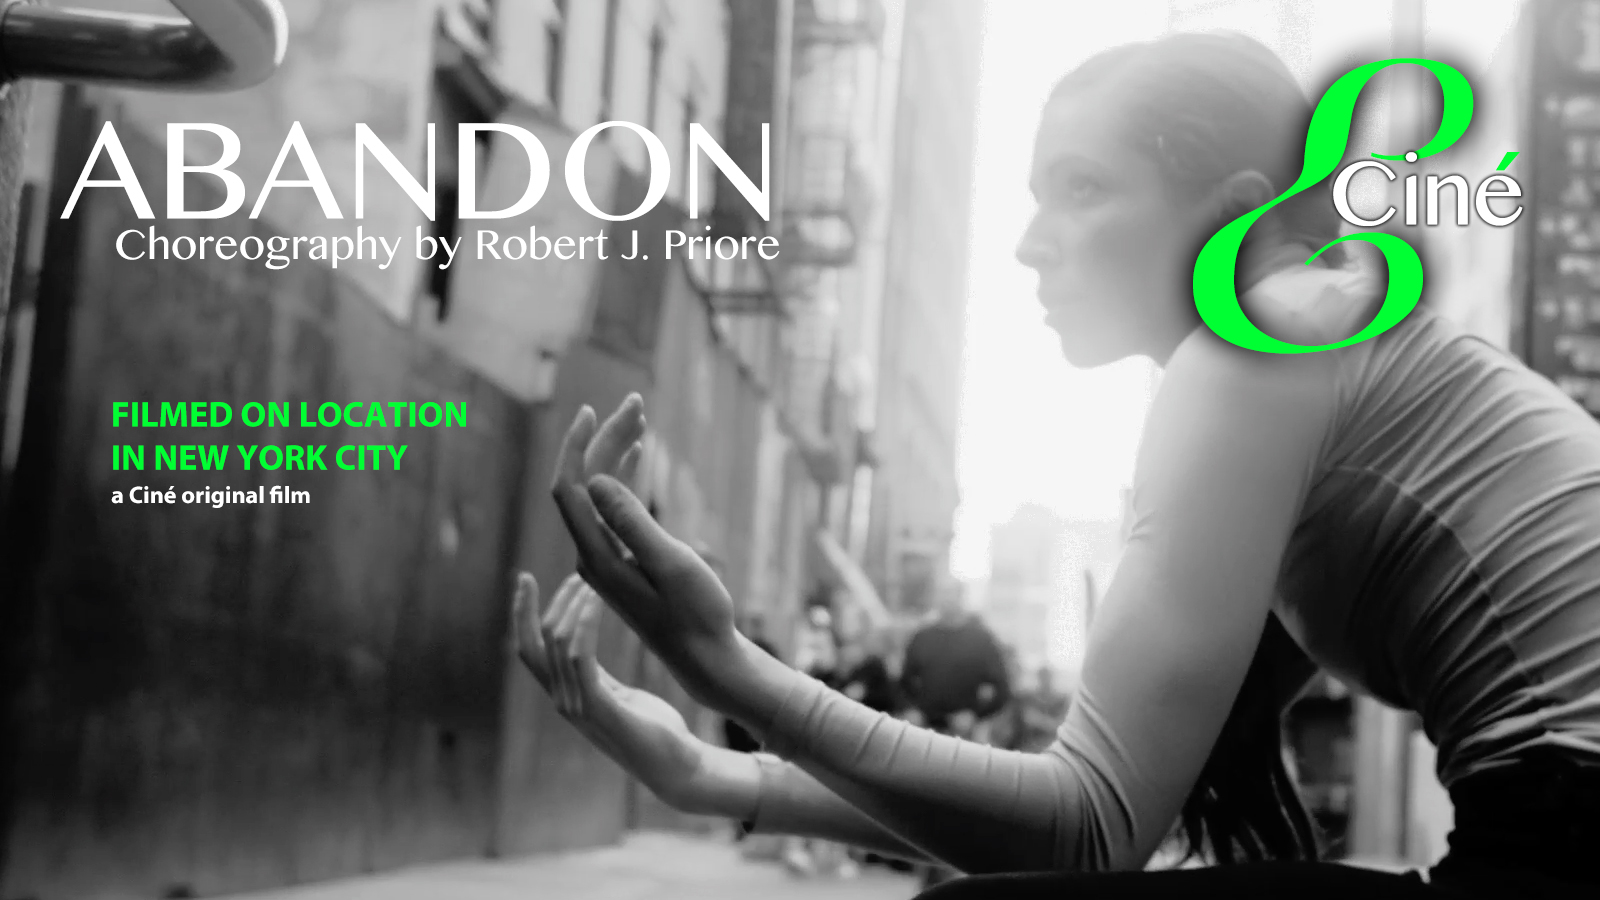 ABANDON. Choreography by Robert J. Priore. A Film by Paul Gordon Emerson